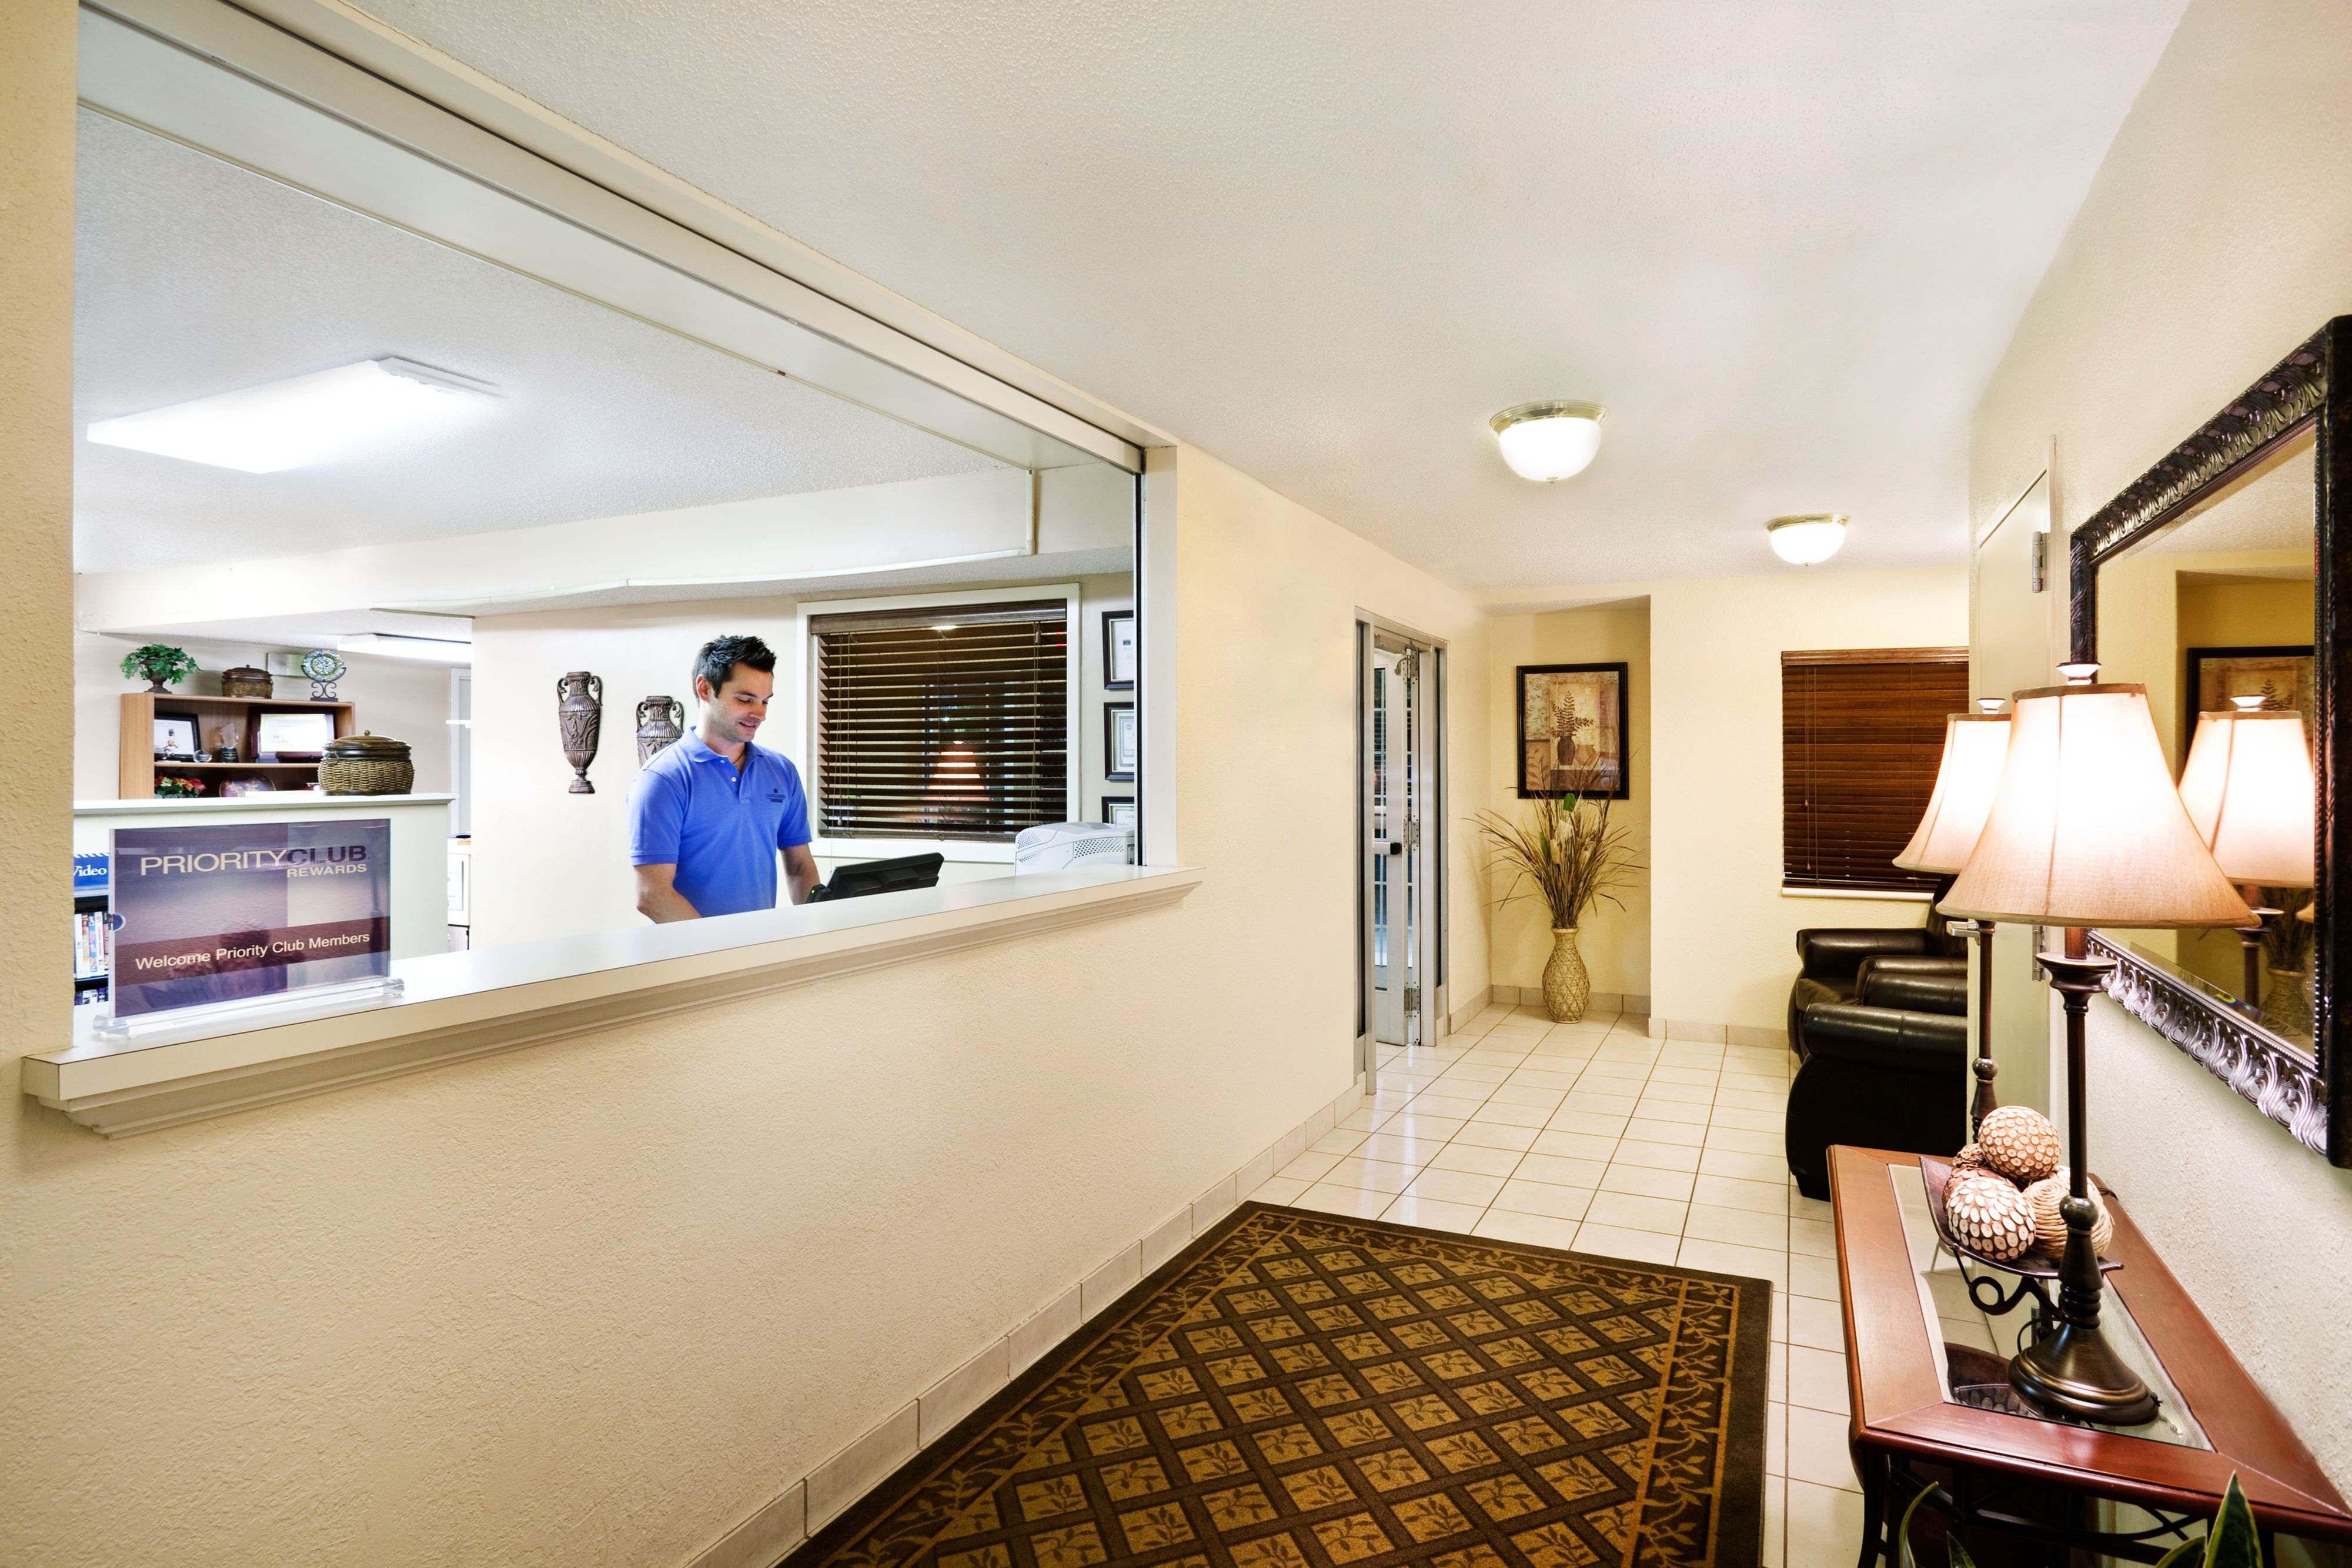 Candlewood Suites Knoxville image 5